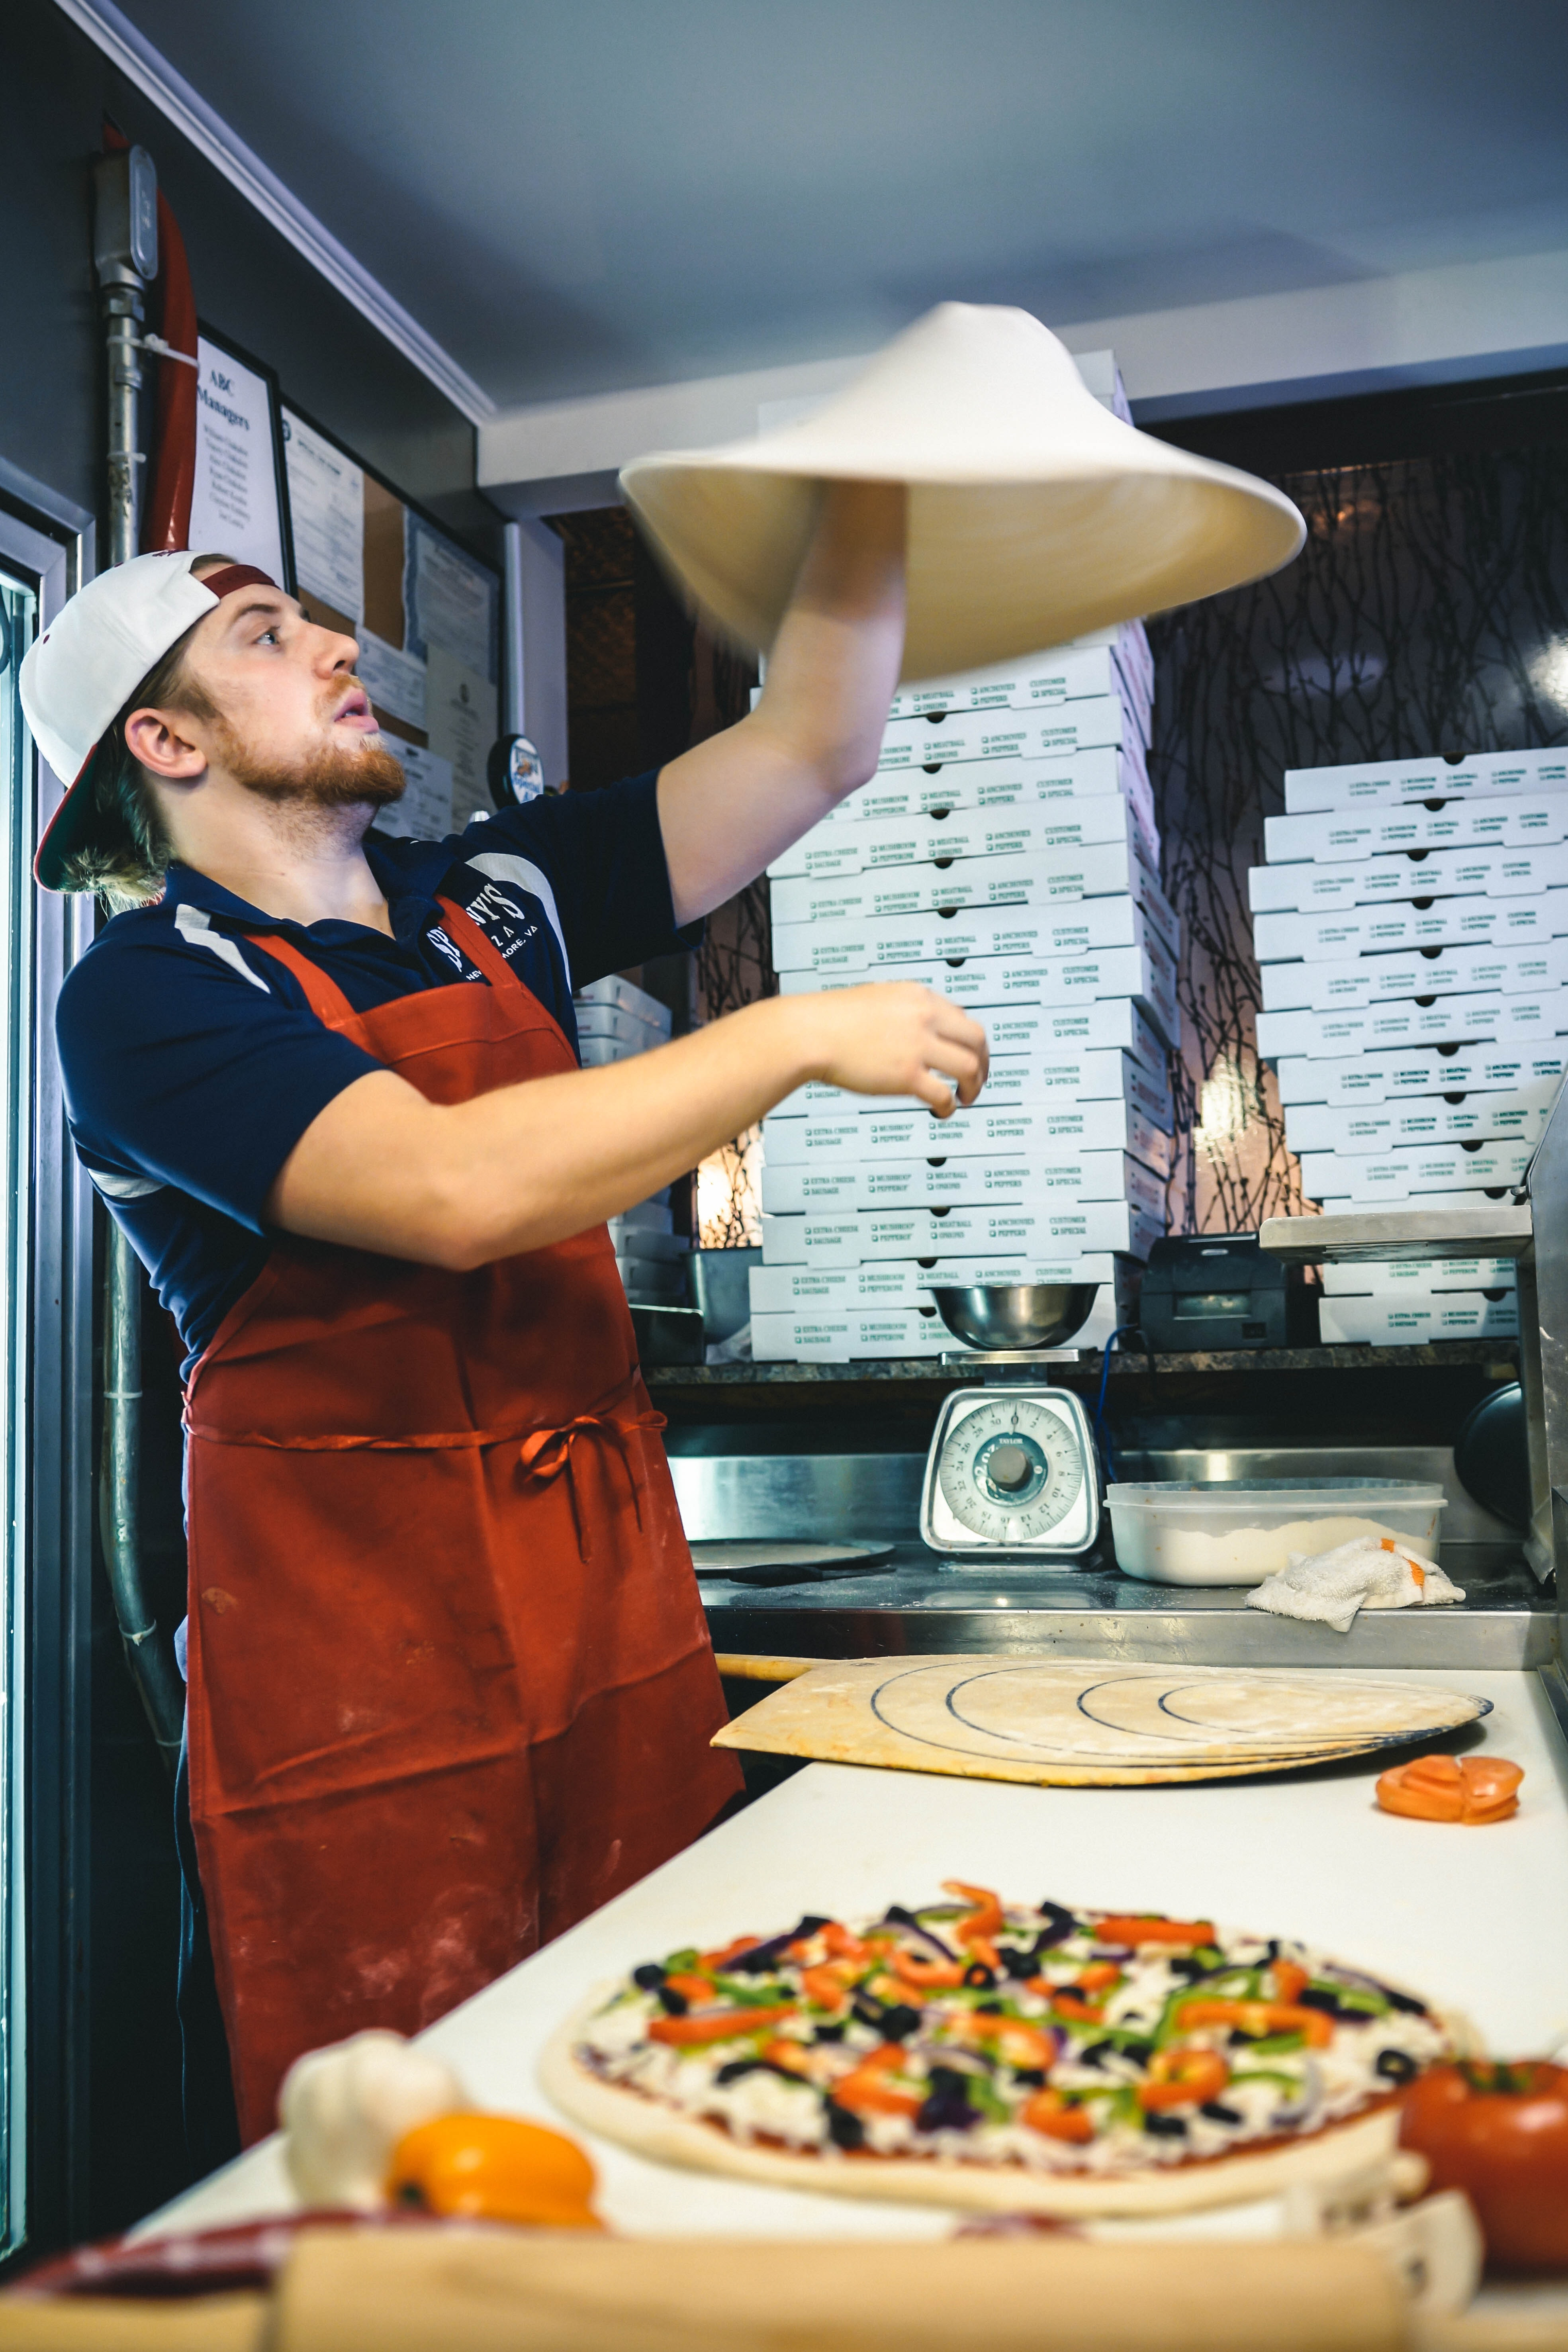 Man Making Pizza Dough, Pizzeria, Make, Making, Male, HQ Photo